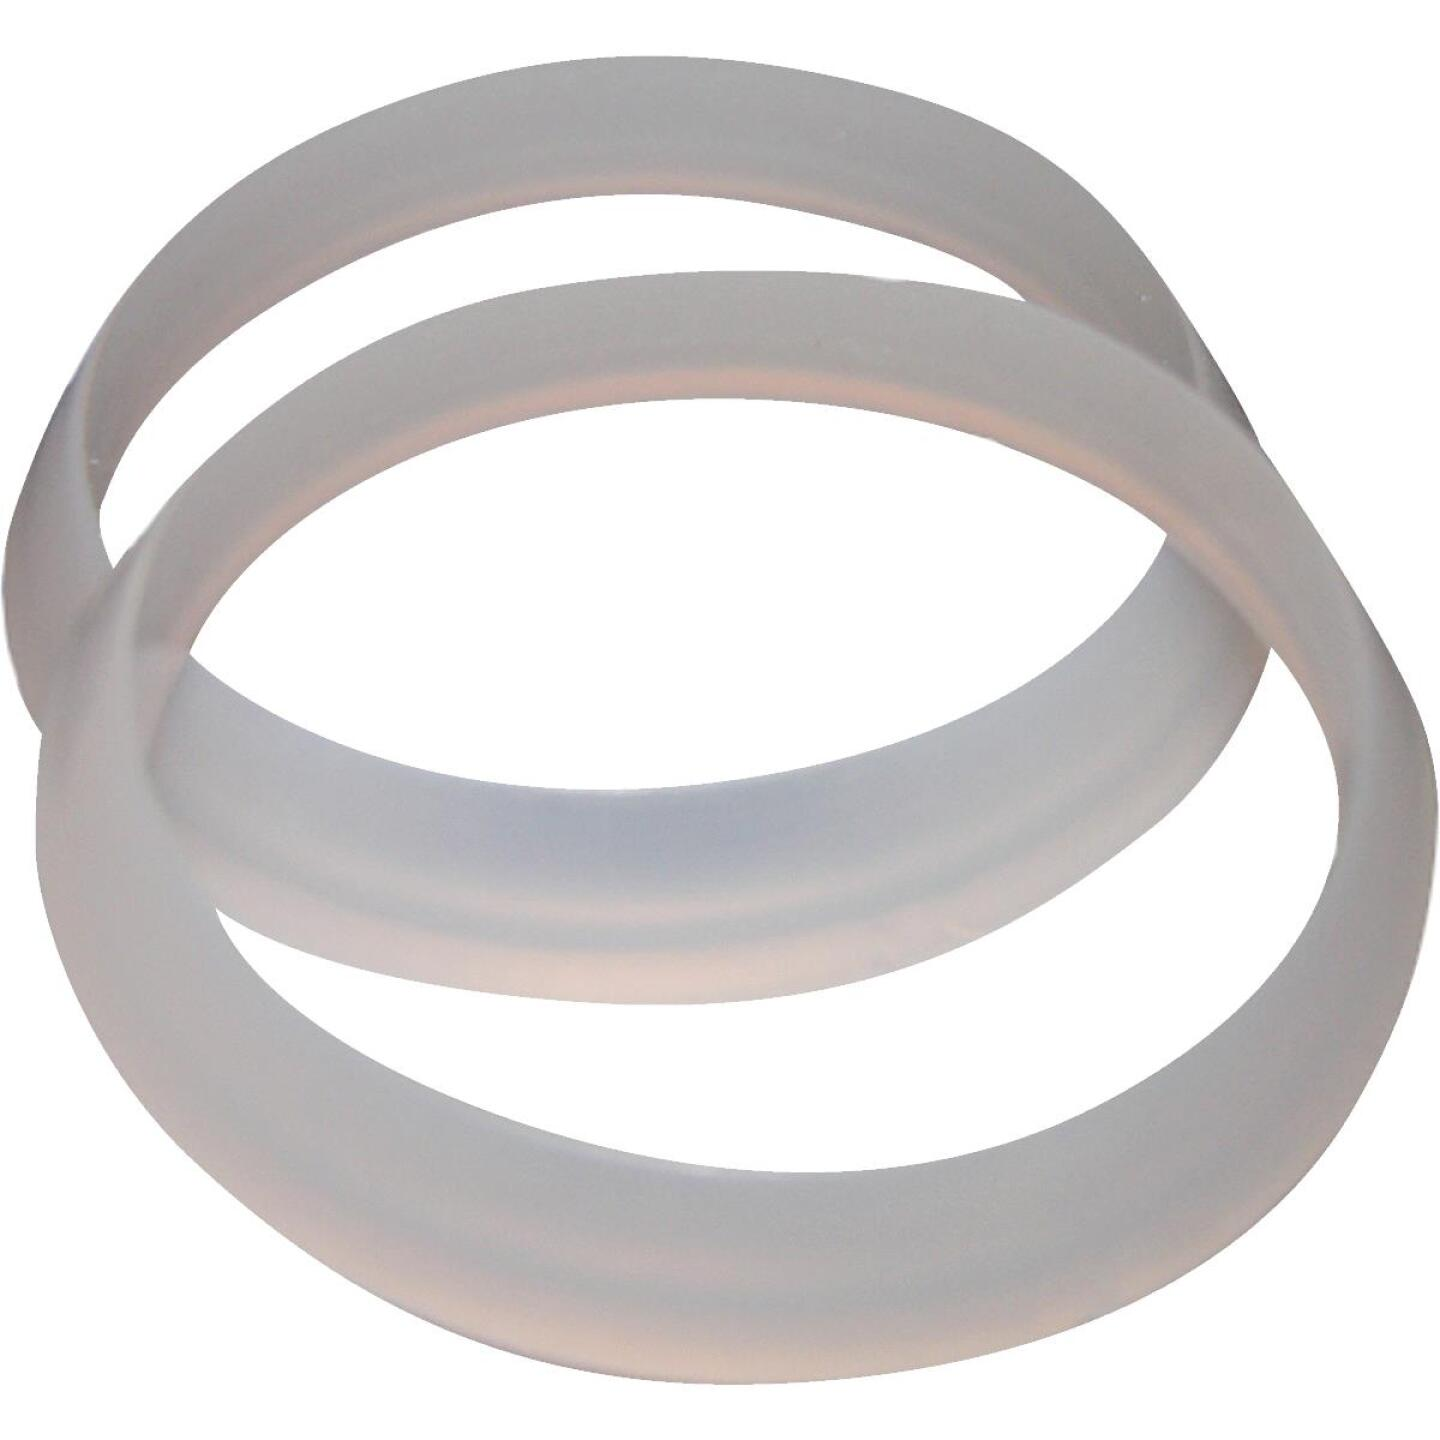 Lasco 1-1/4 In. White Plastic/Poly Slip Joint Washer (2 Pack) Image 1